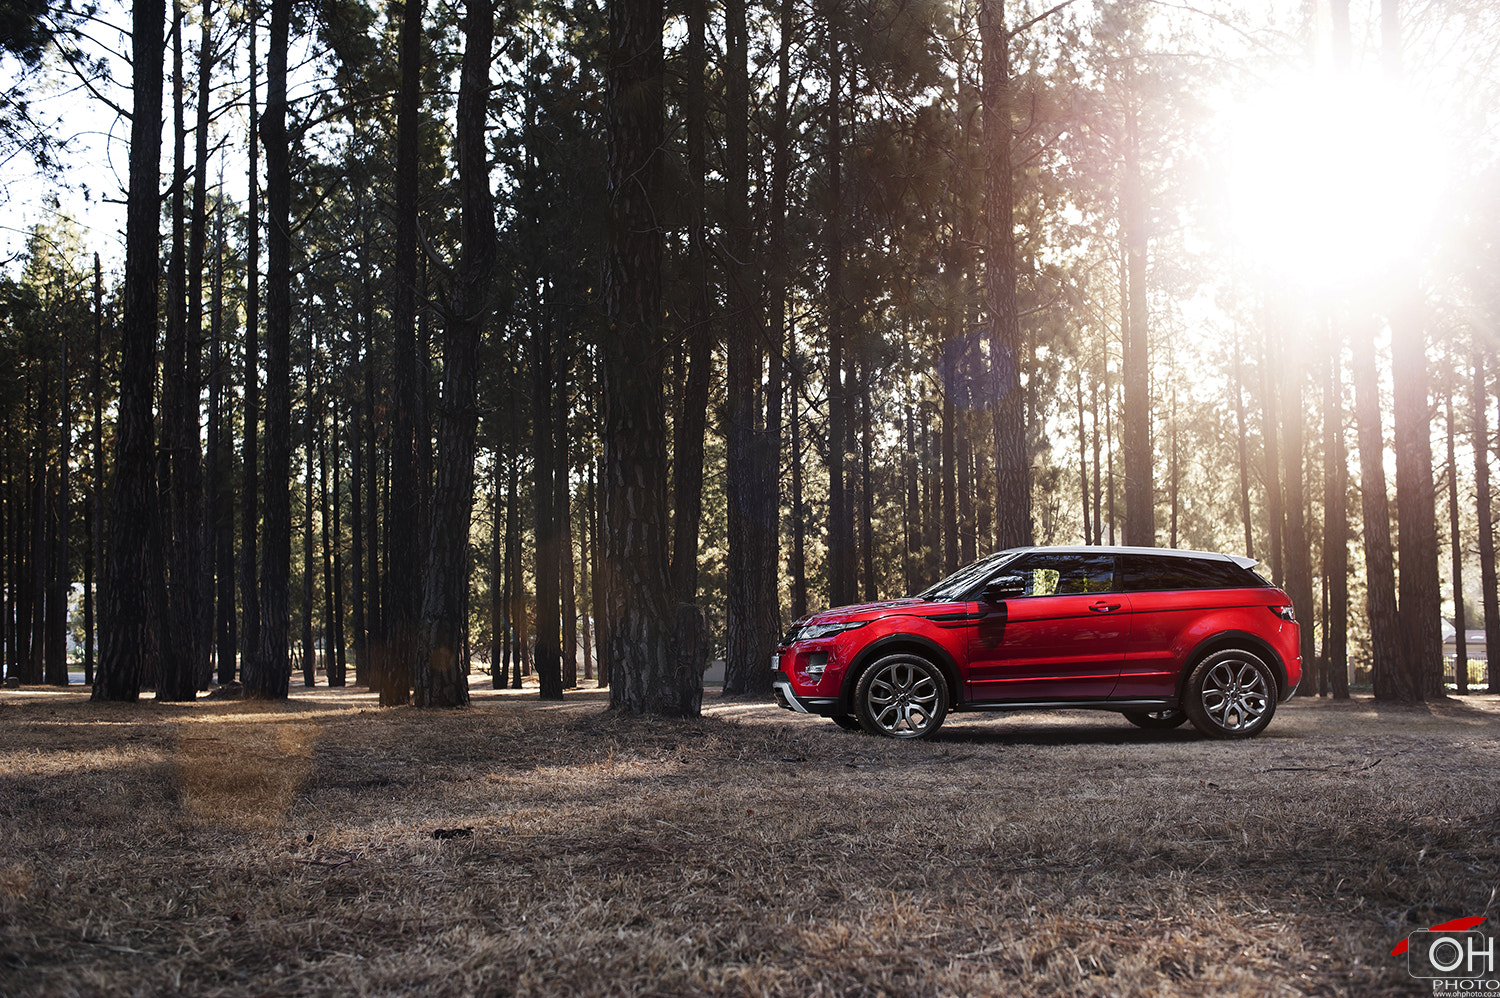 Photograph Evoque At Sunset by Oliver H on 500px